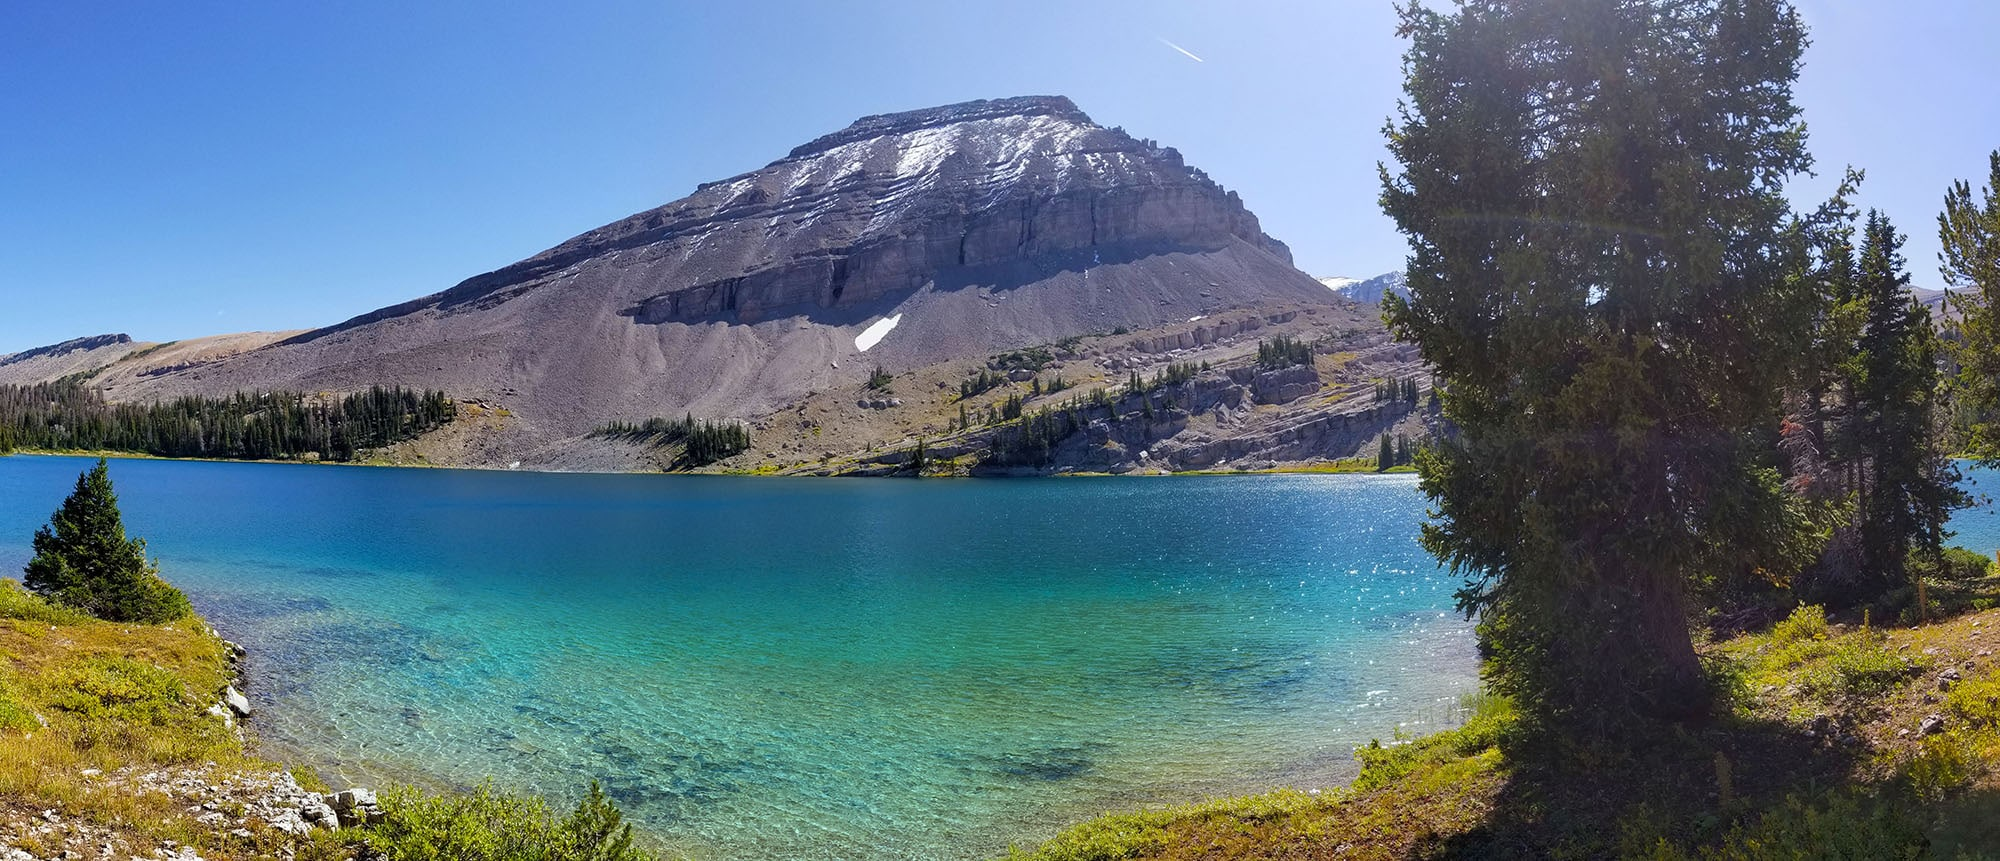 Brewster Lake, Wyoming in the Gros Ventre Range